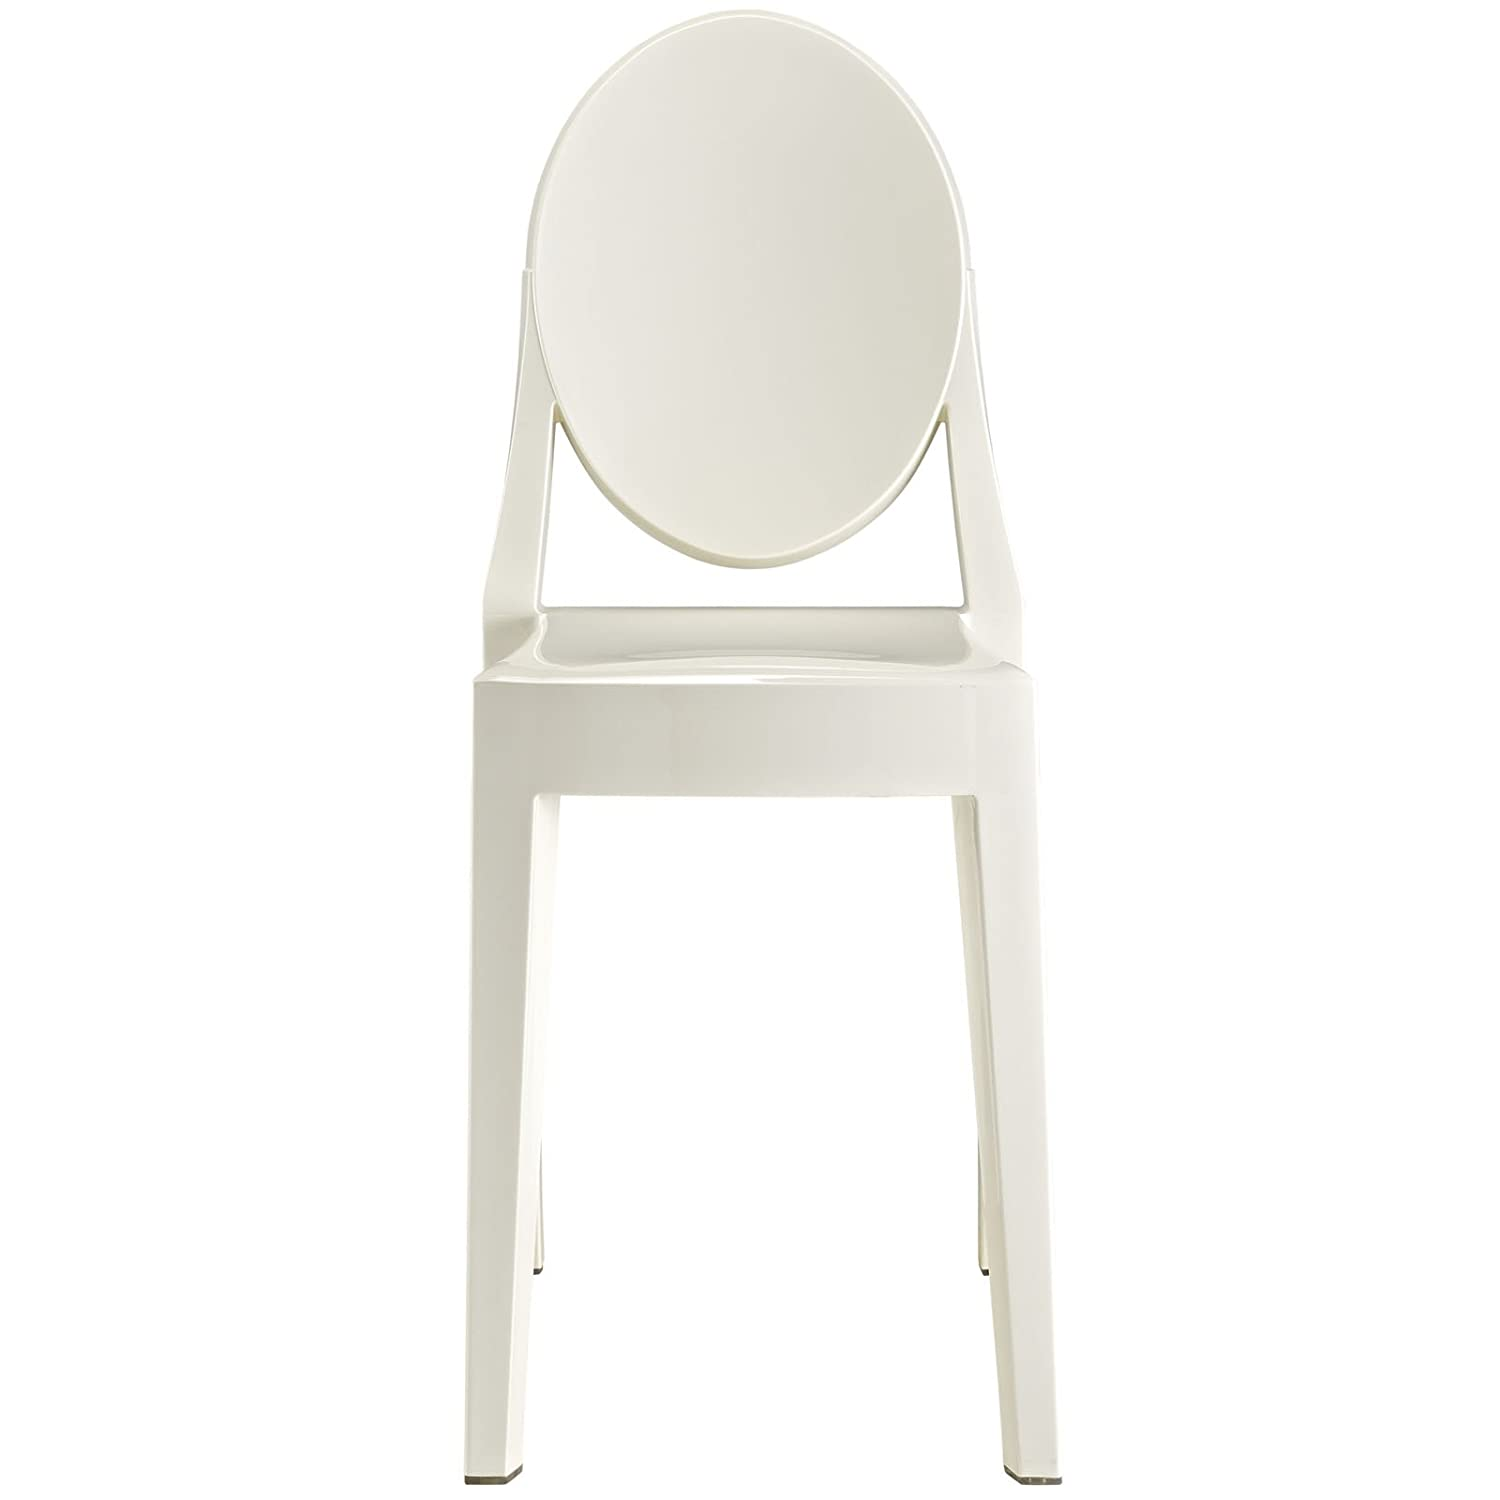 Exceptionnel Amazon.com   Modway Casper Modern Acrylic Dining Side Chair In White    Chairs